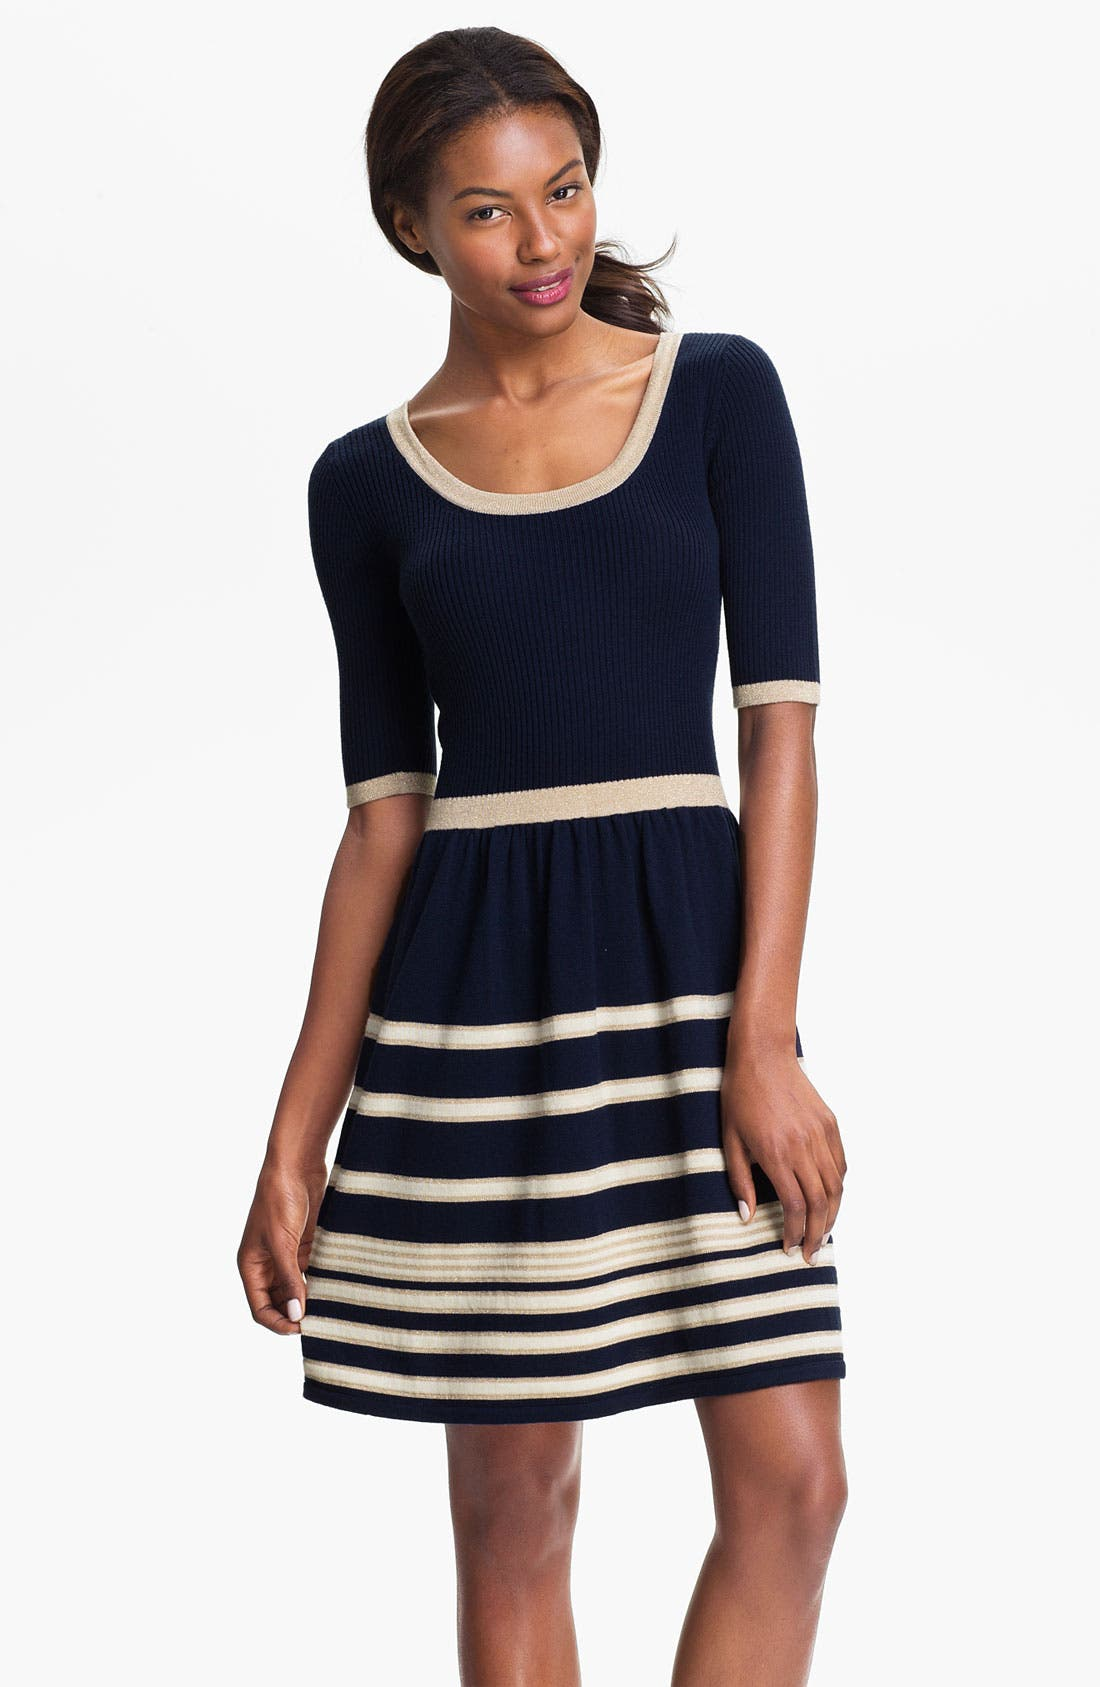 Main Image - Lilly Pulitzer® 'Joanna' Fit & Flare Sweater Dress